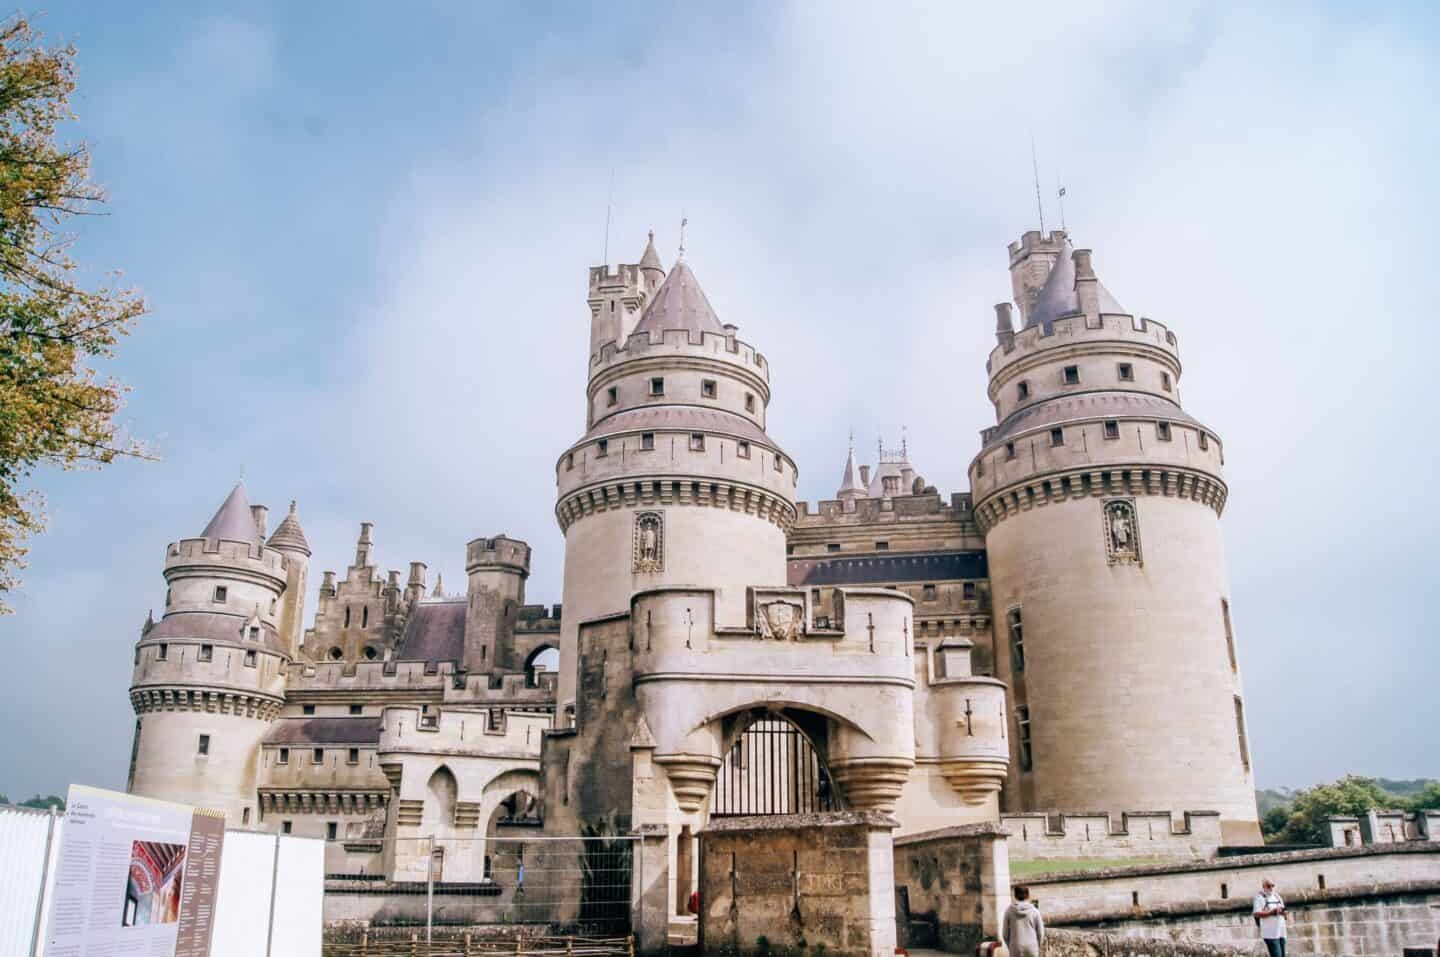 A white fairytale castle in Europe